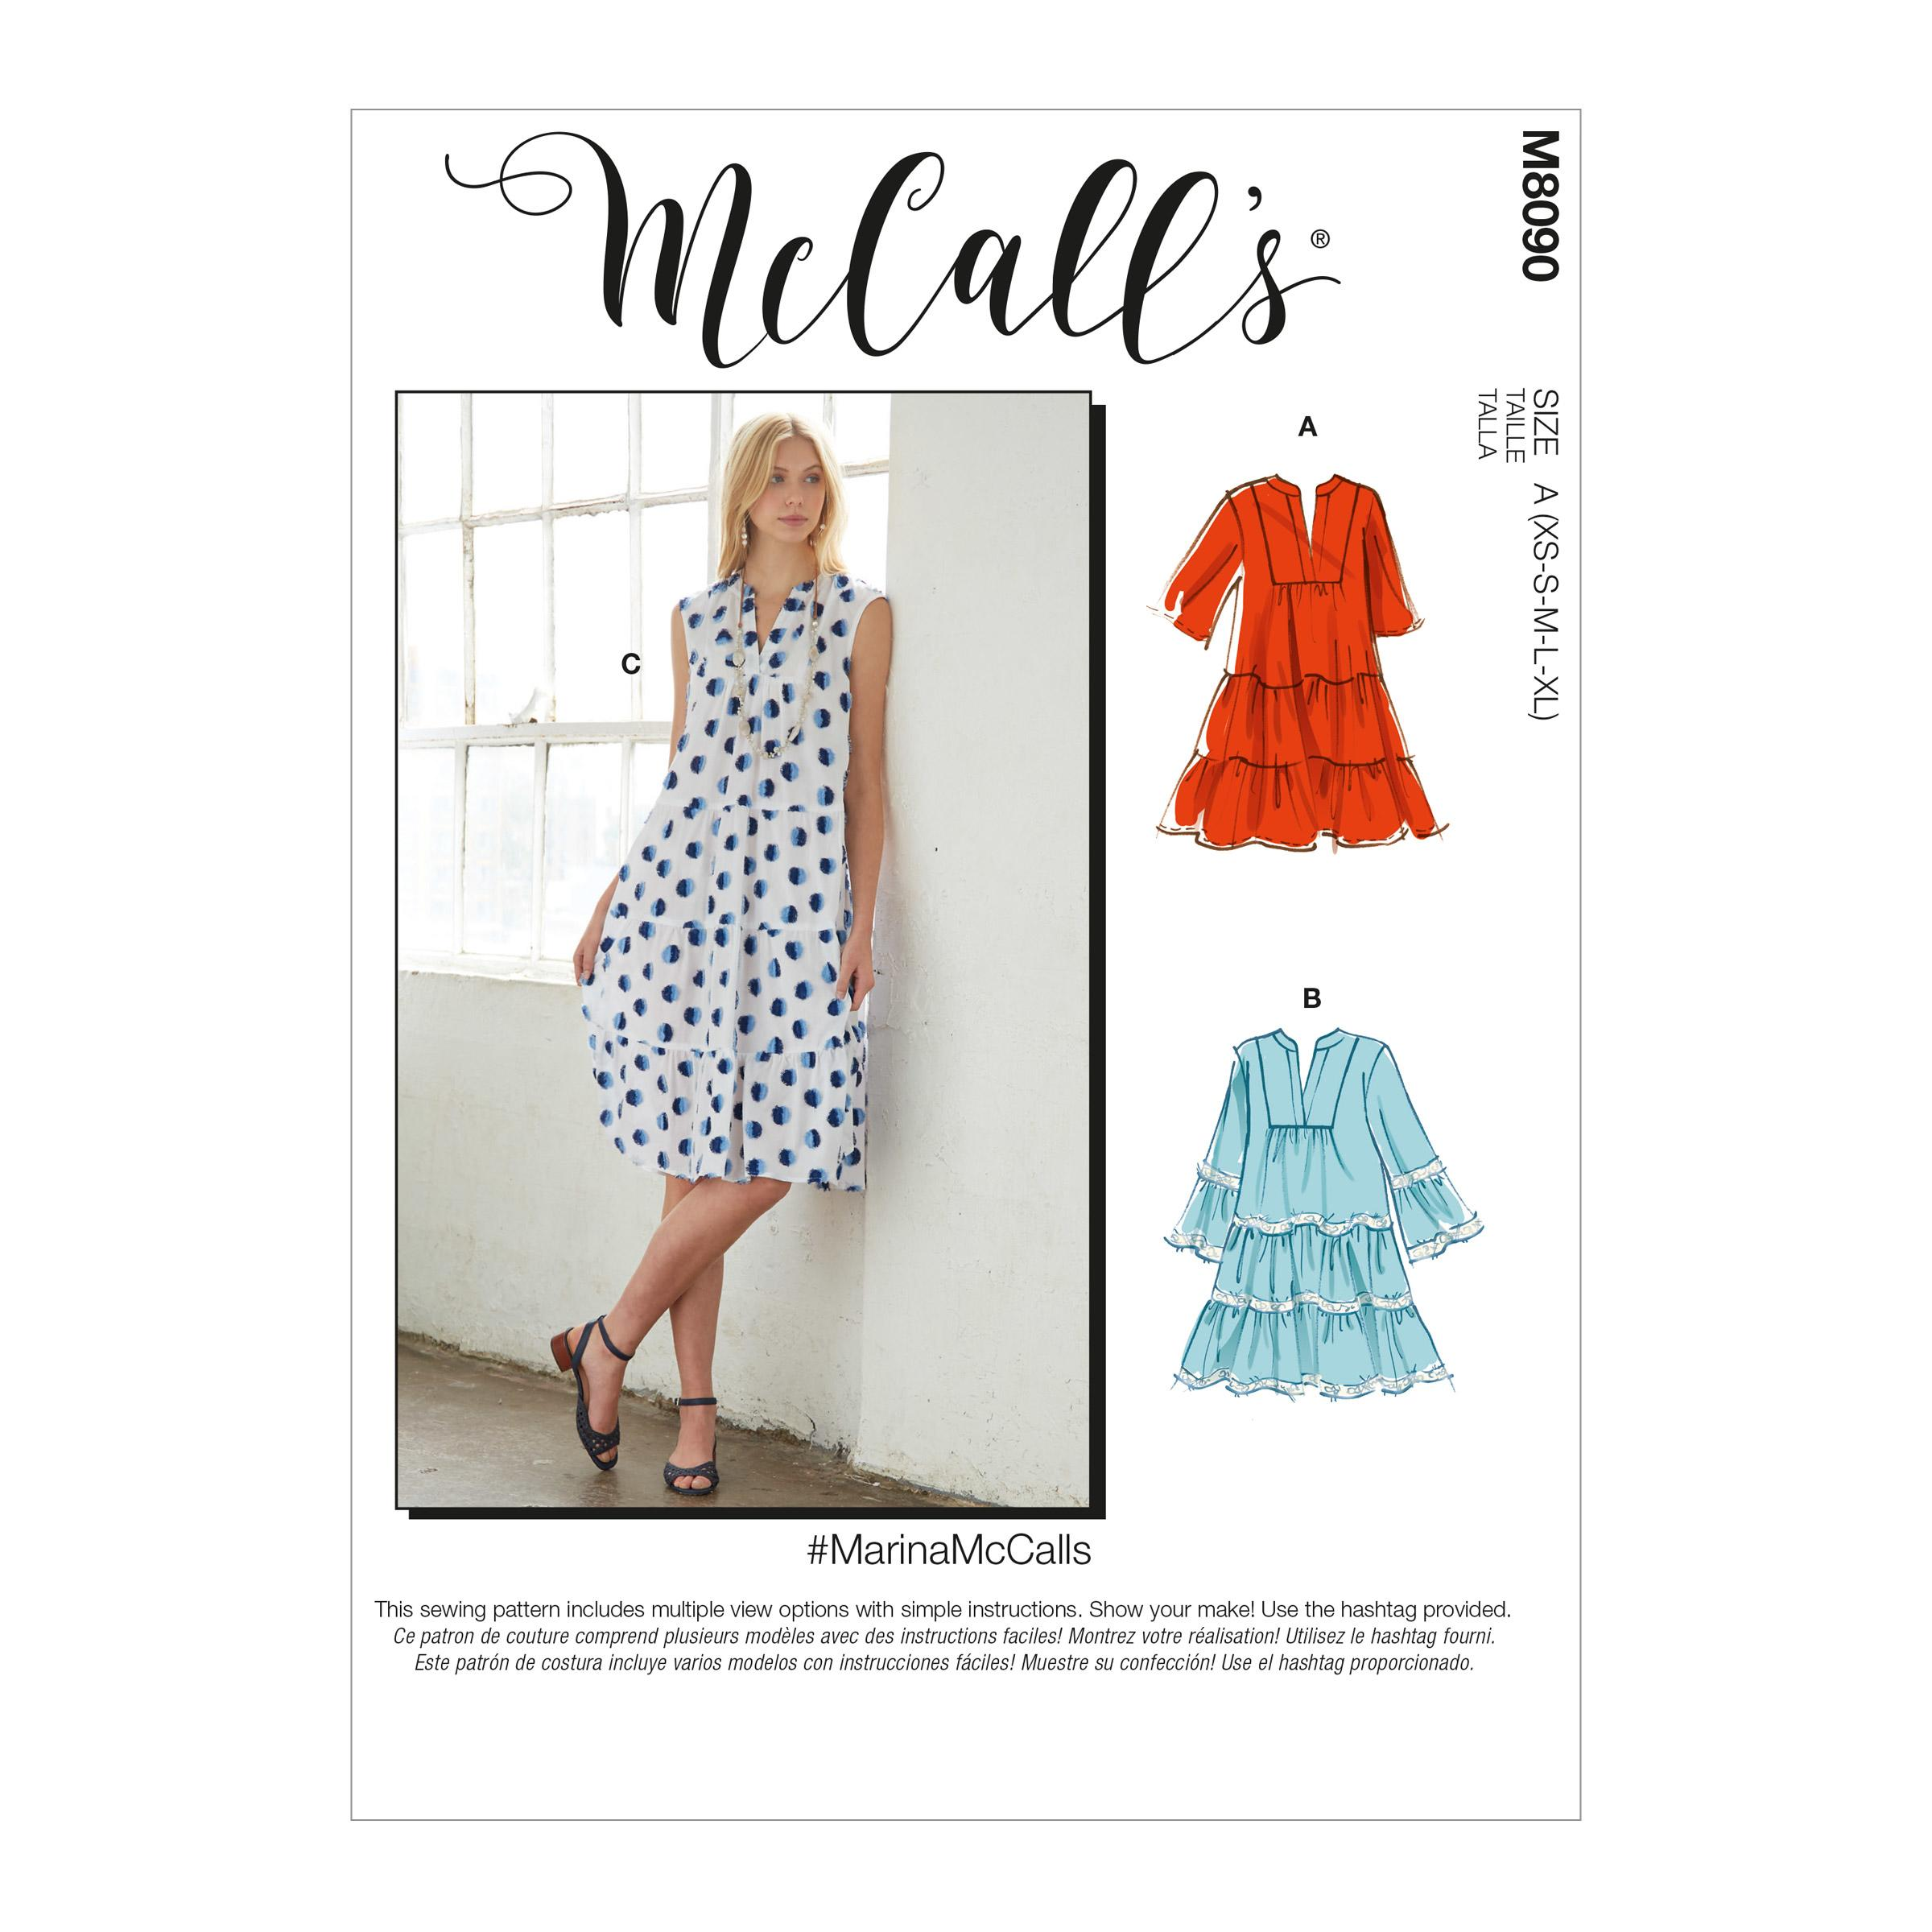 McCalls M8090 #MarinaMcCalls - Misses' Dresses & Belt